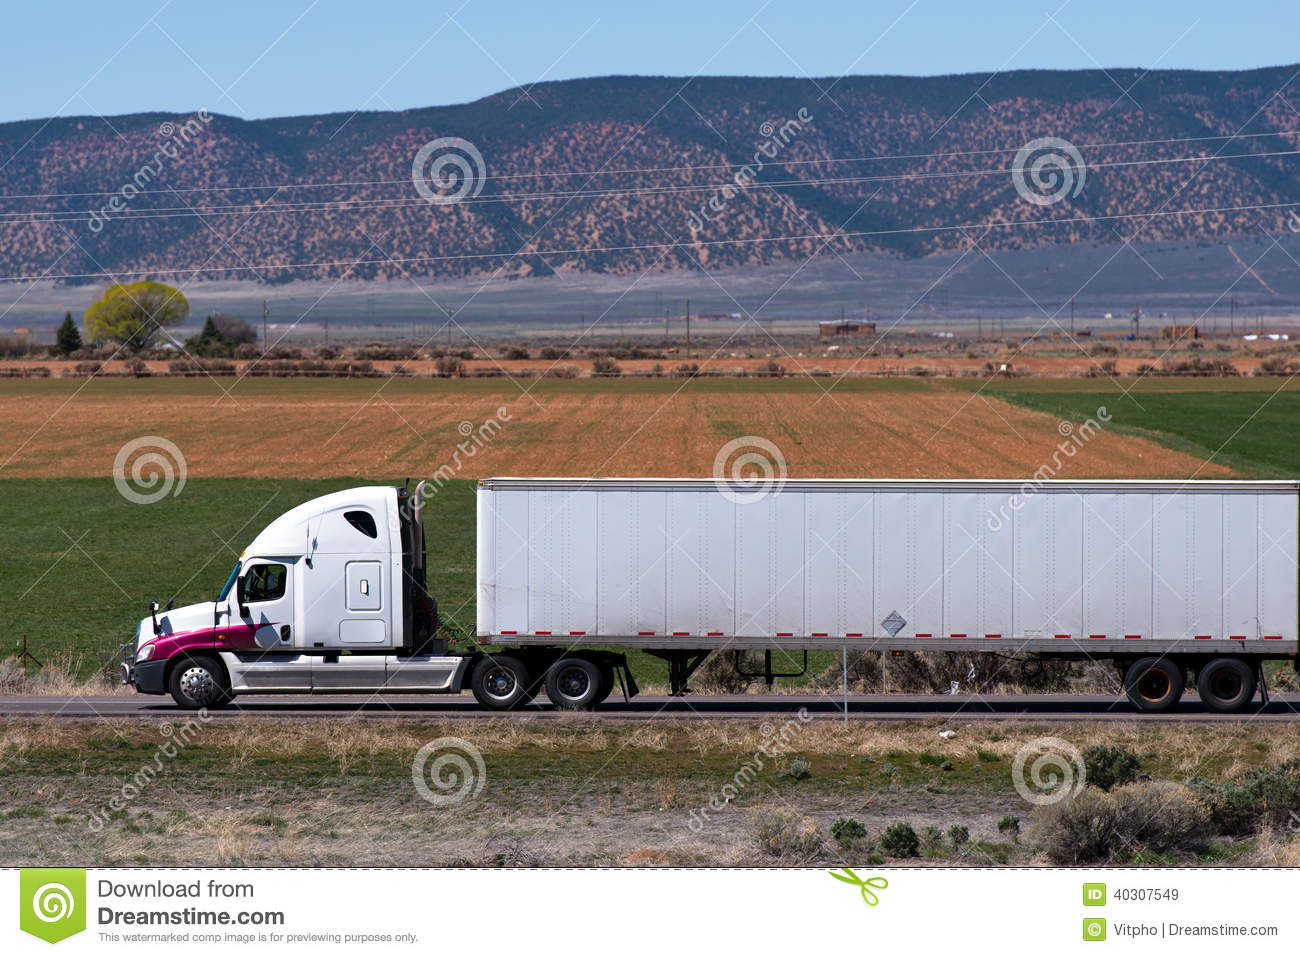 Semi Truck Seats >> White Simi Truck And Trailer On The Nature Background Stock Image - Image: 40307549